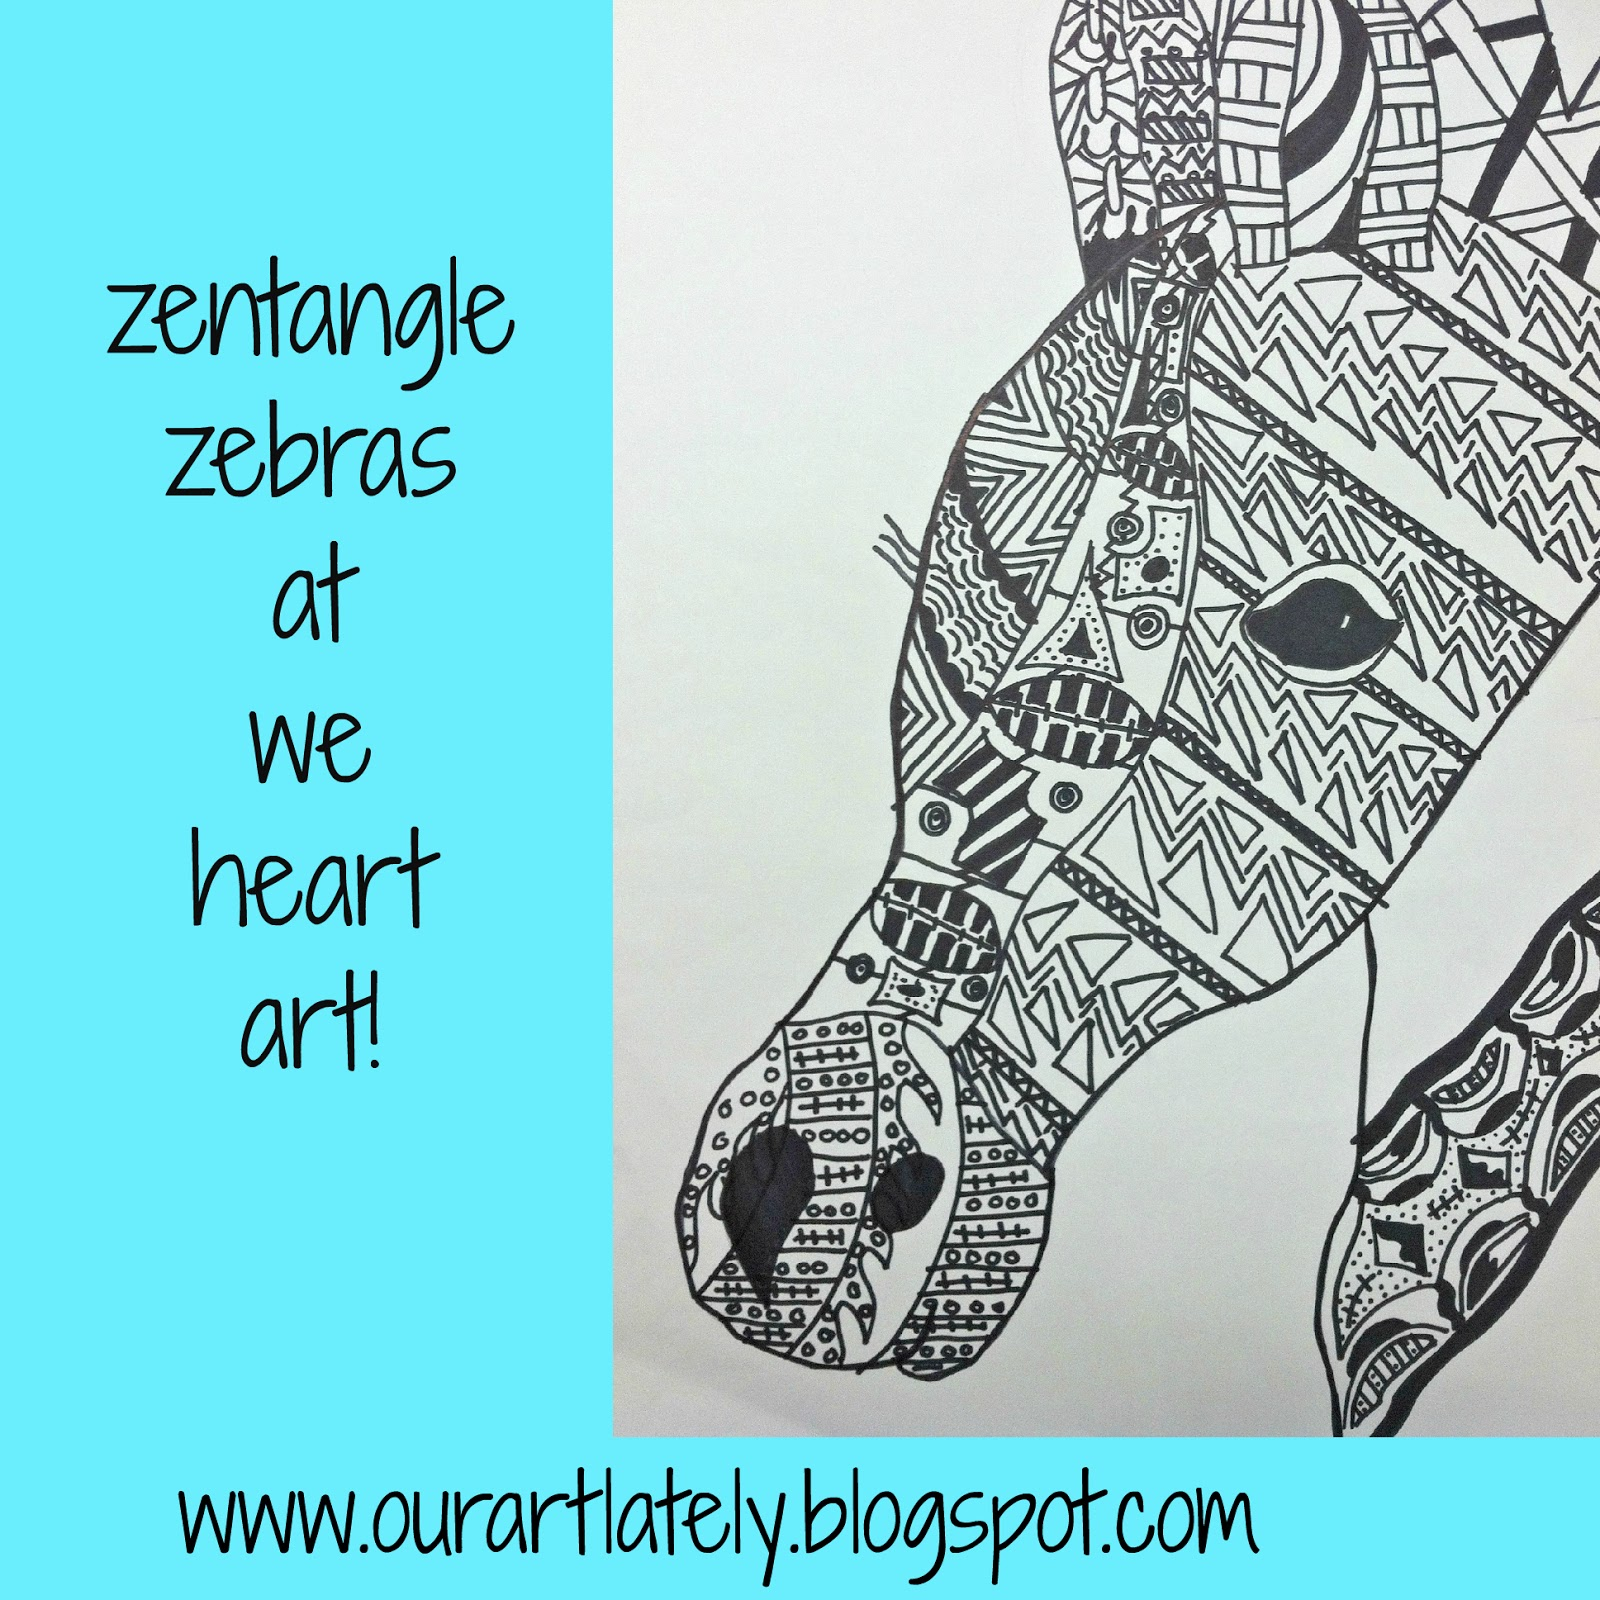 we heart art zentangled zebras